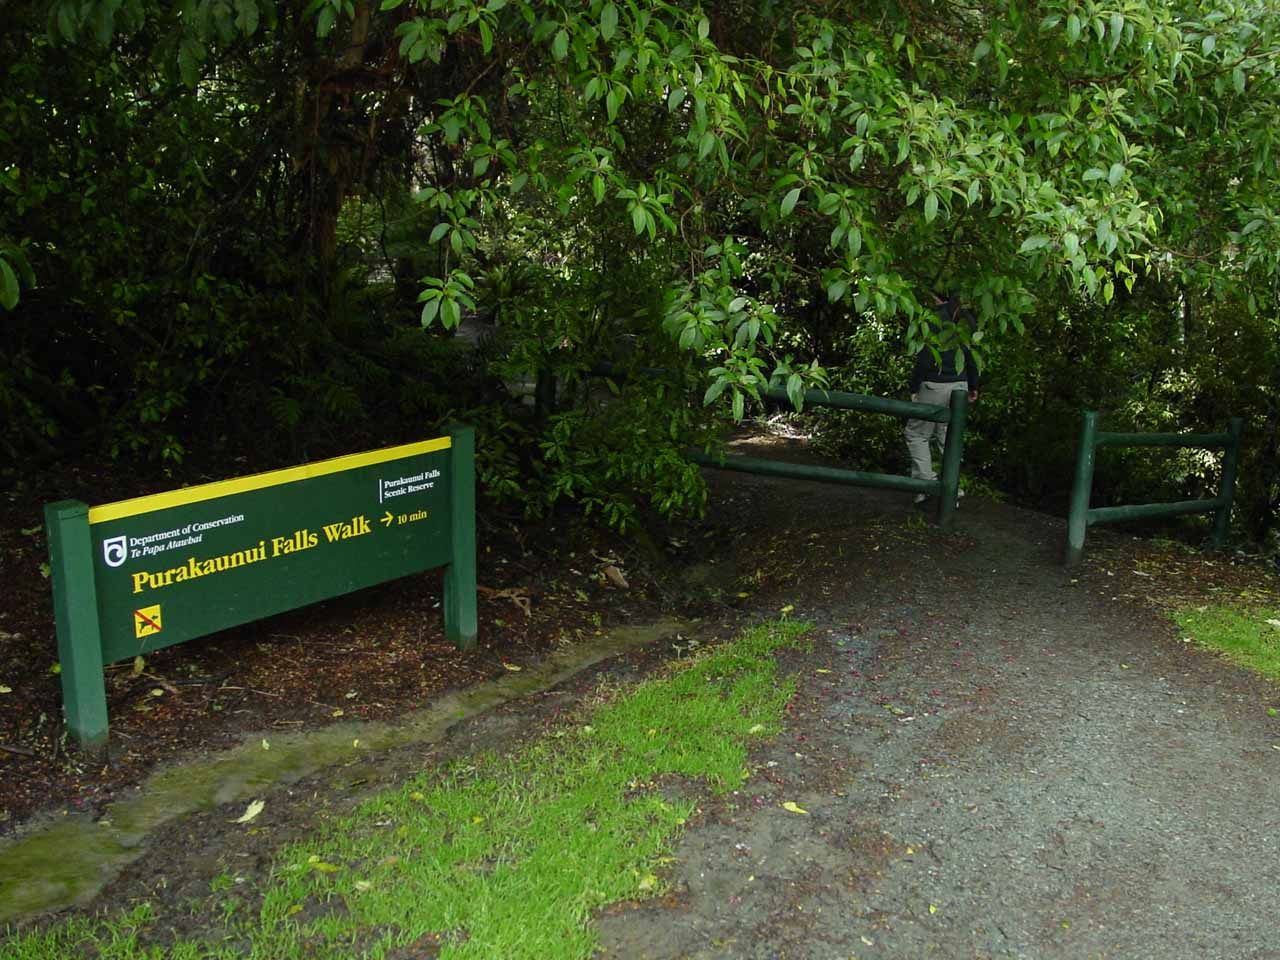 Julie going past the signposted trailhead for Purakaunui Falls